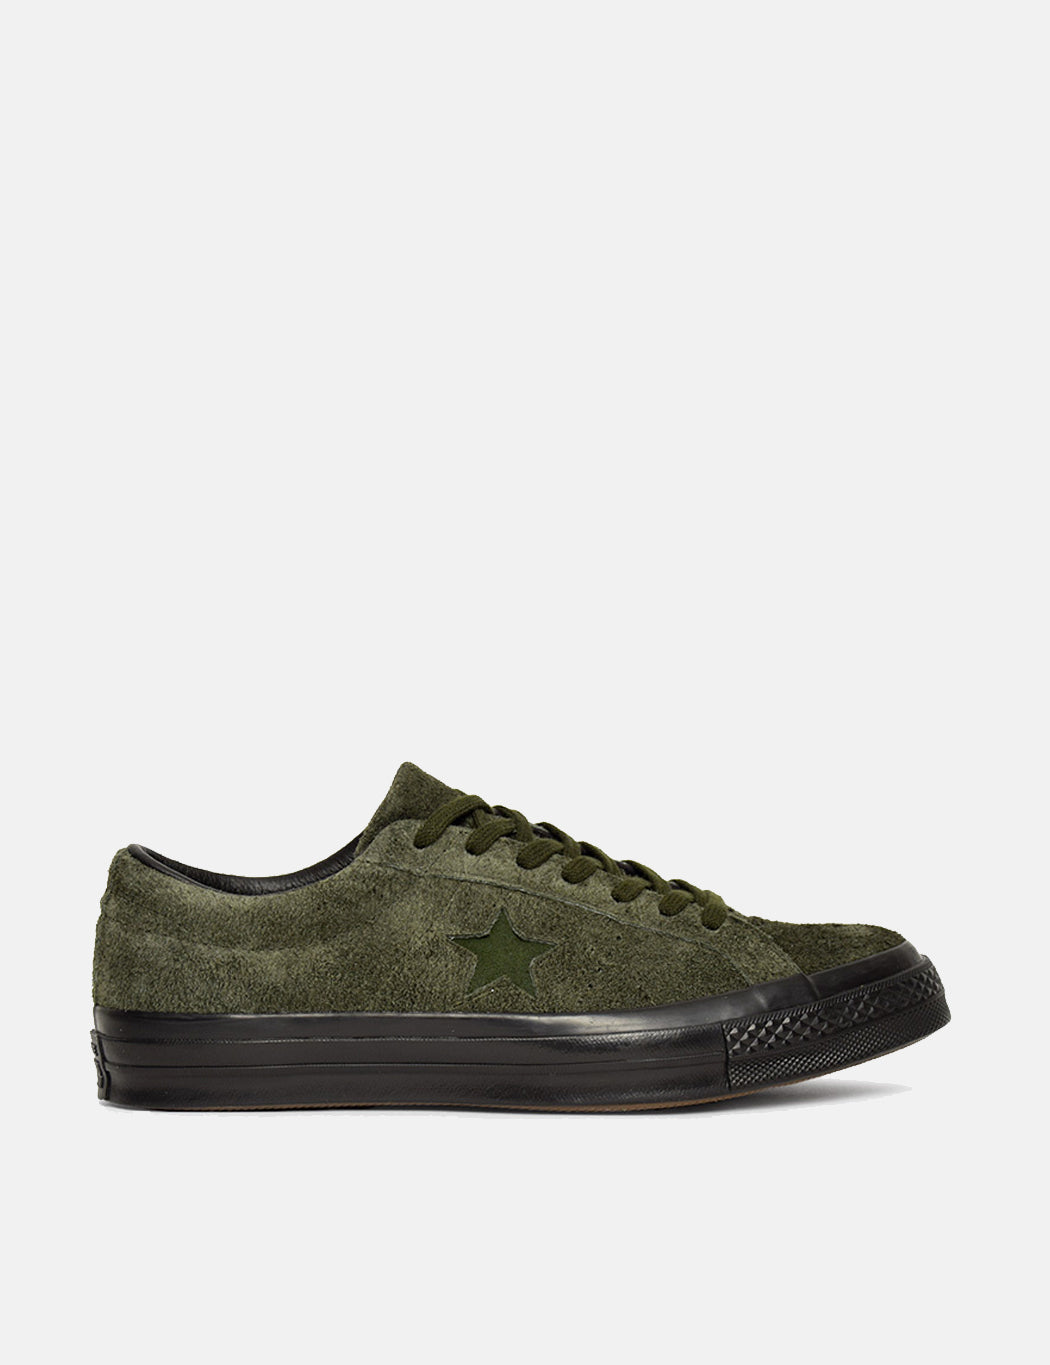 Converse One Star Ox Low Suede (163812C) in Utility Green 65c18b130